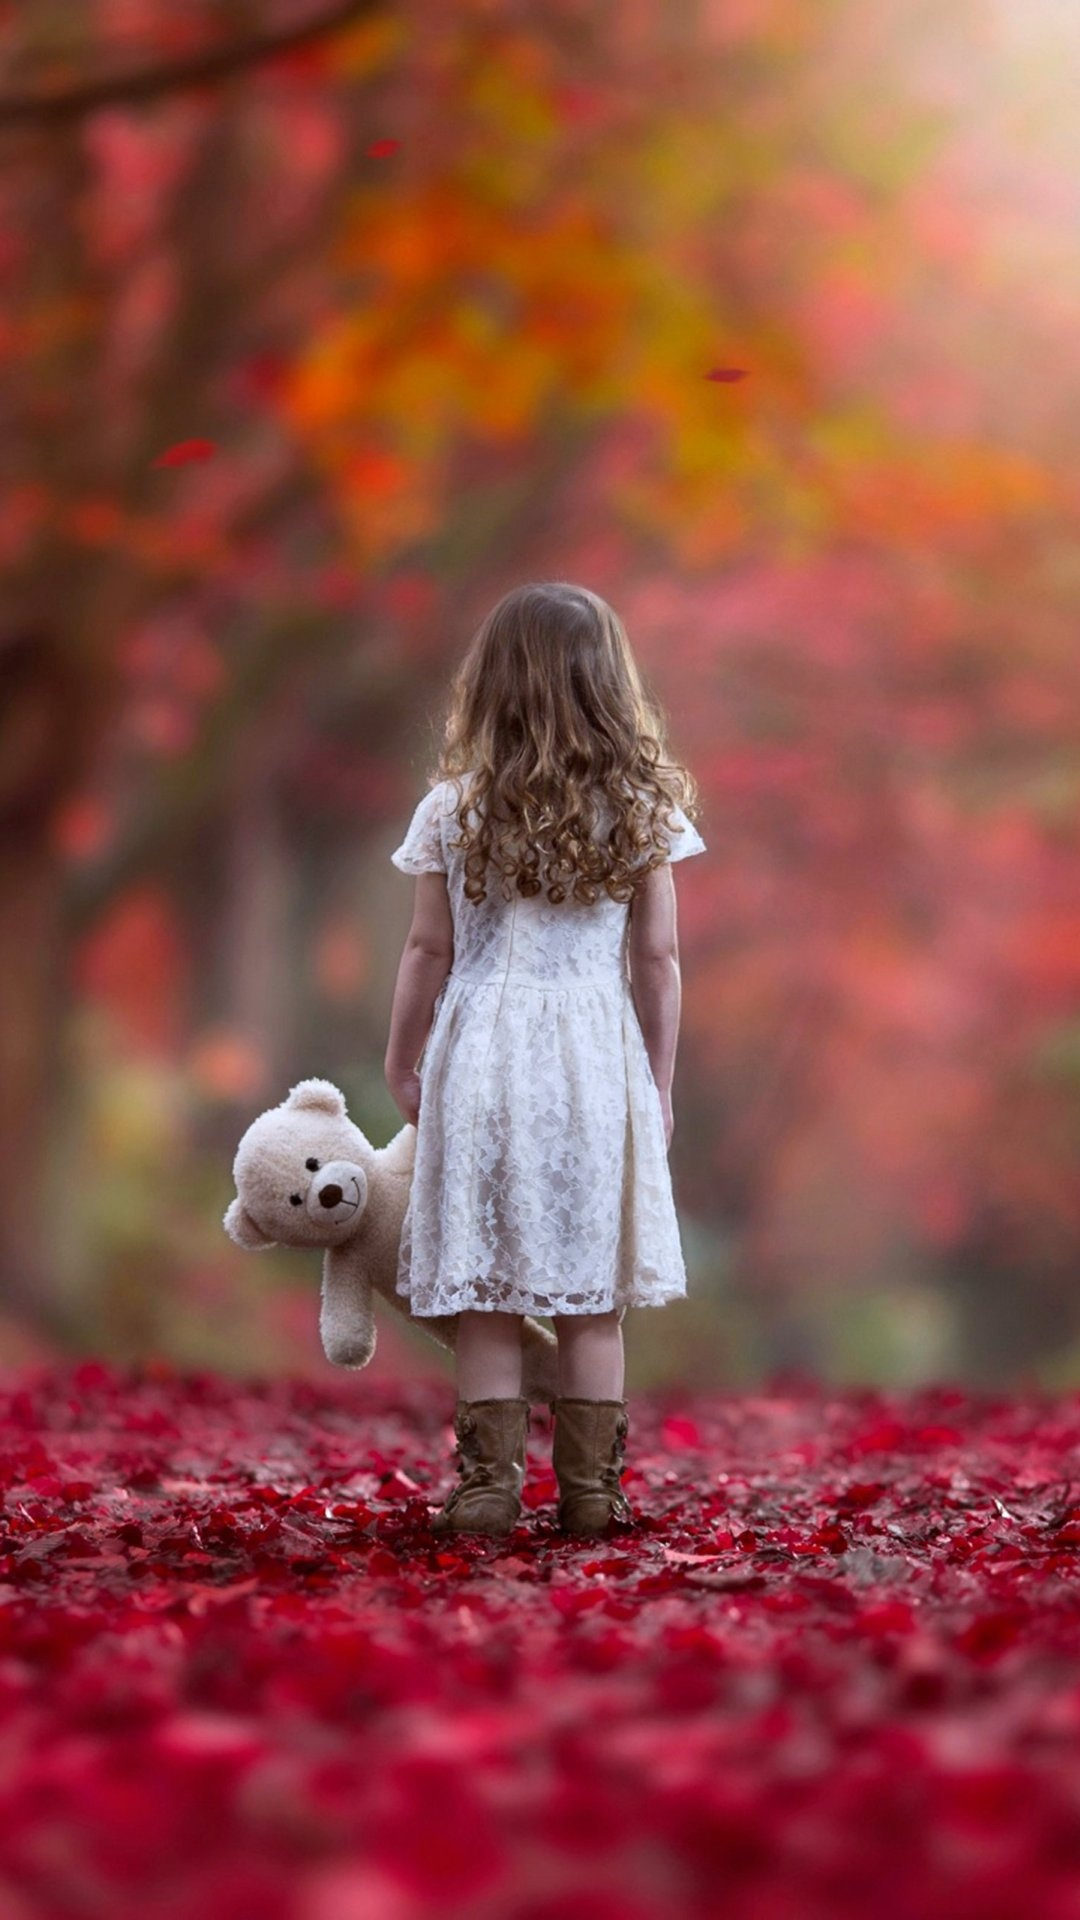 Girl Holding Teddy Bear Wallpapers Autumn Sad Lonely Little Girl Wallpapers 1080x1920 328006